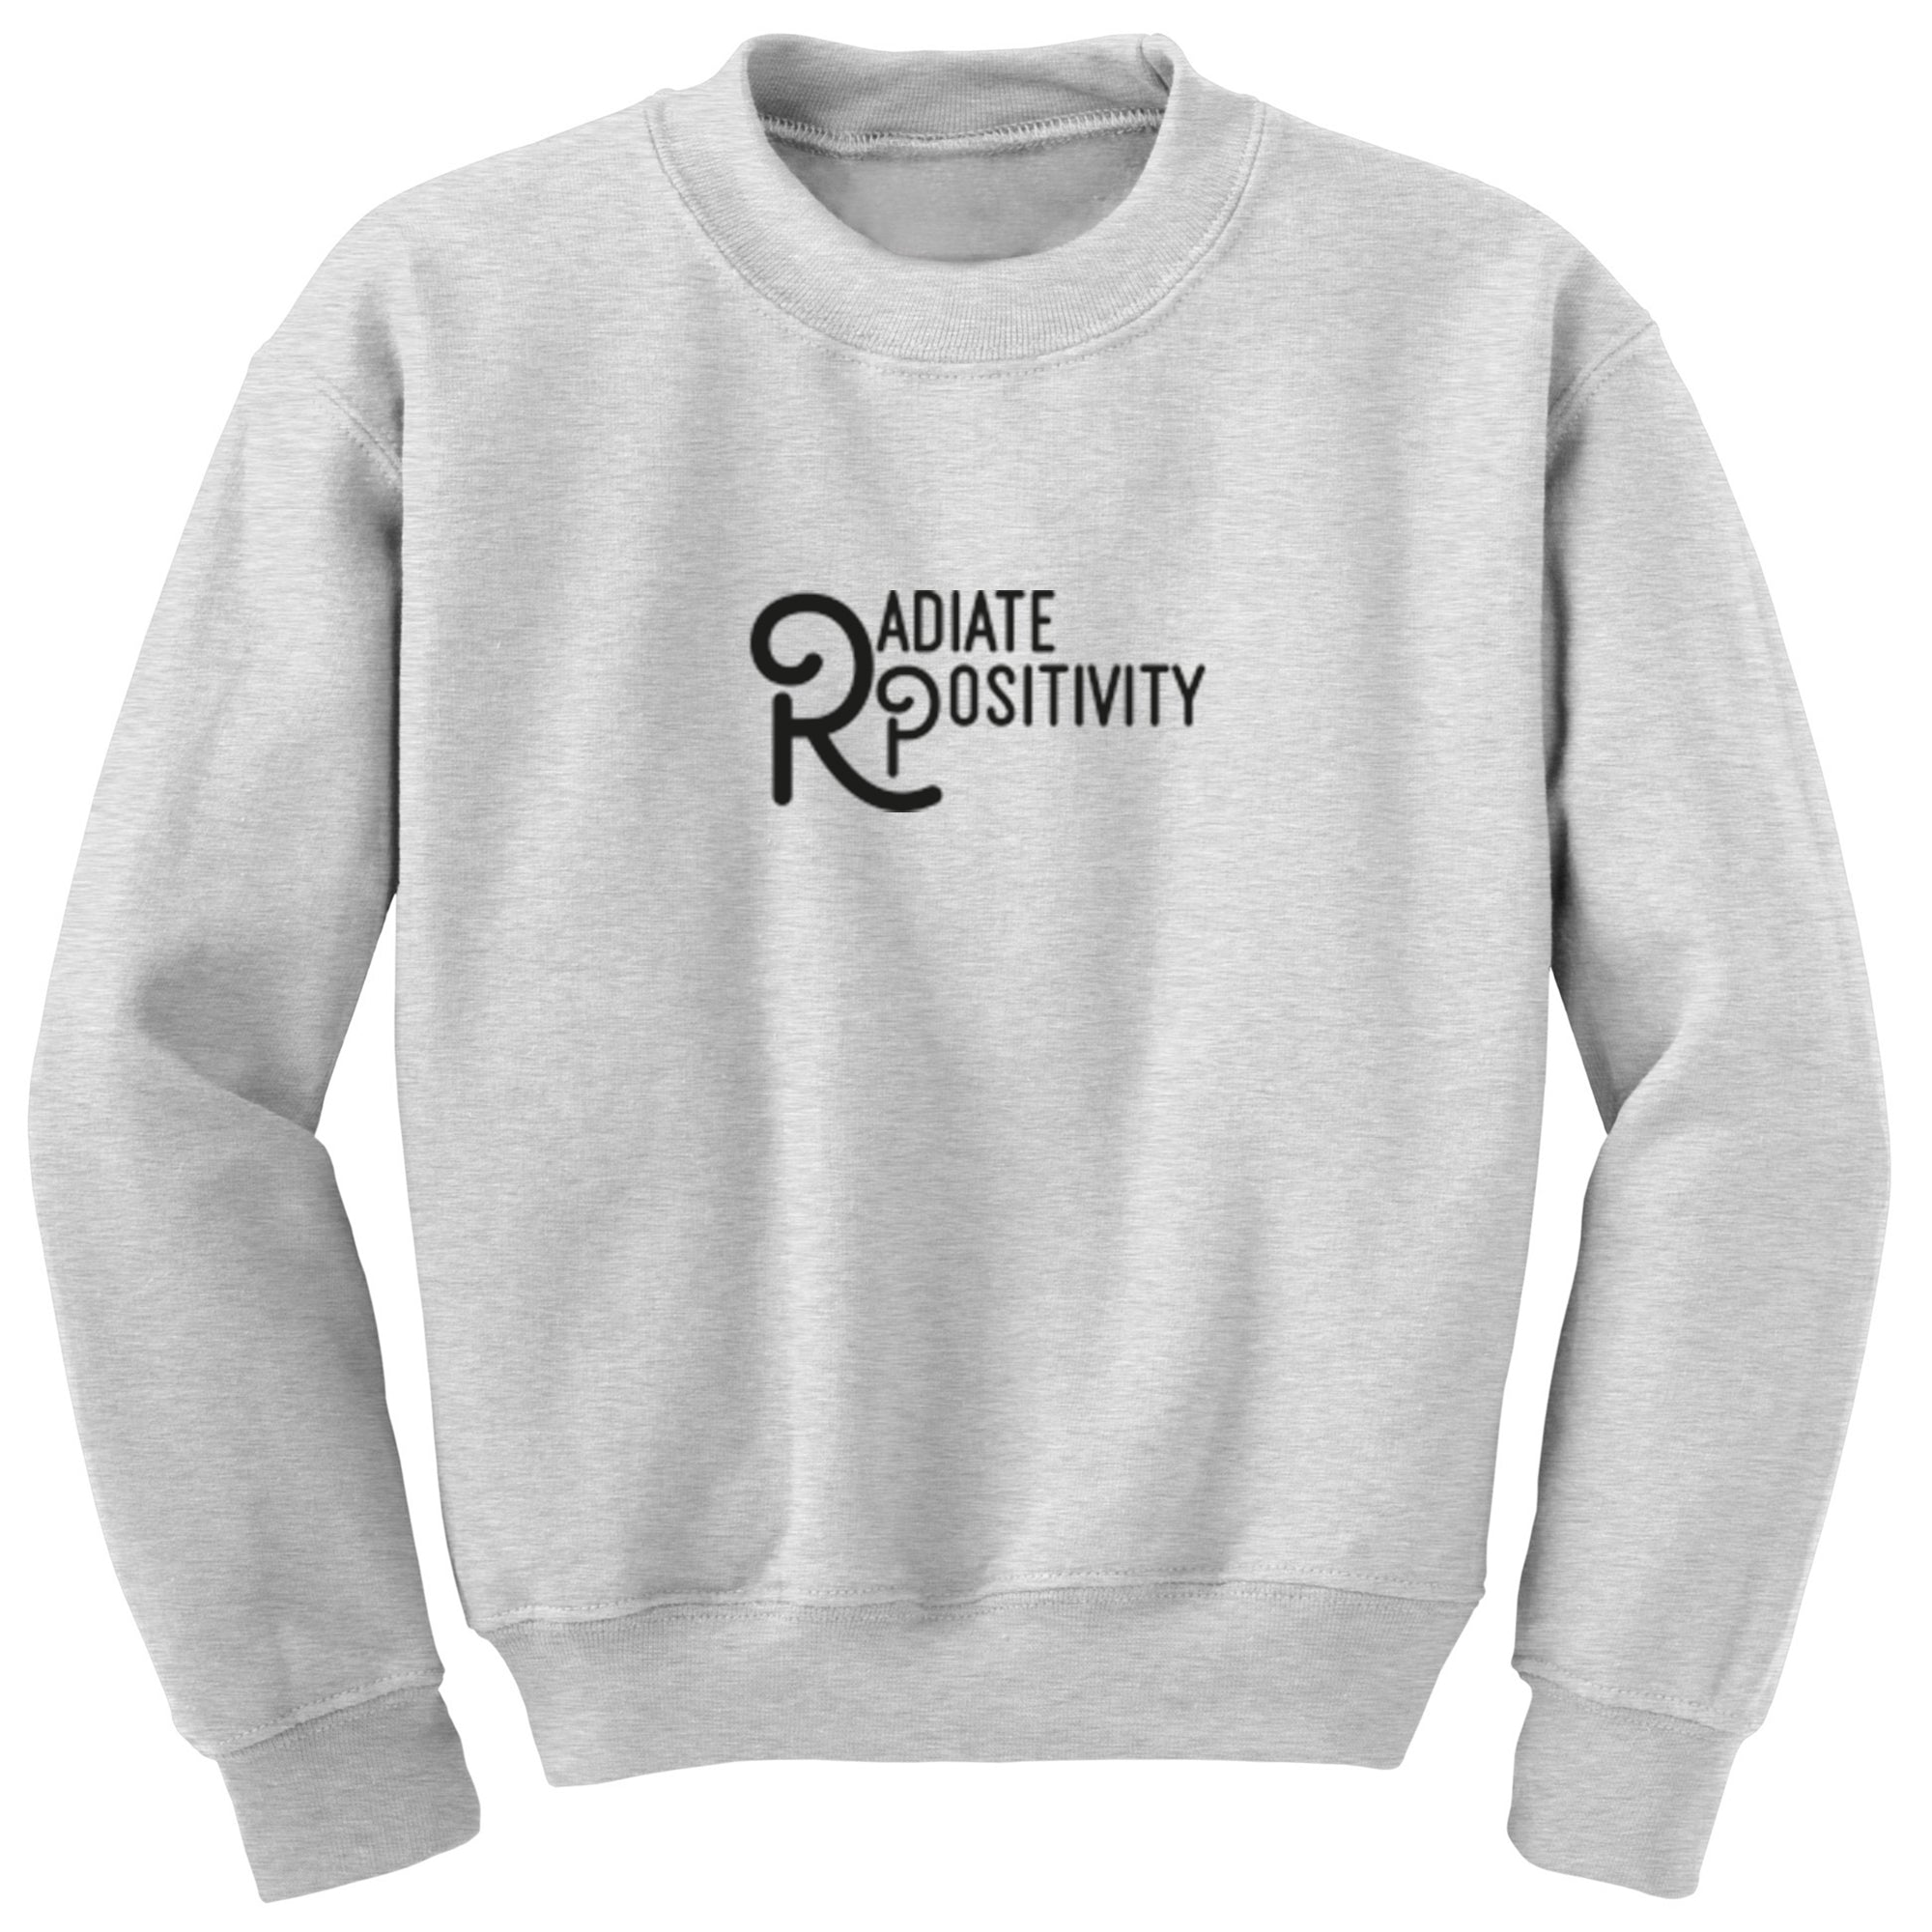 Radiate Positivity Unisex Jumper S1258 - Illustrated Identity Ltd.